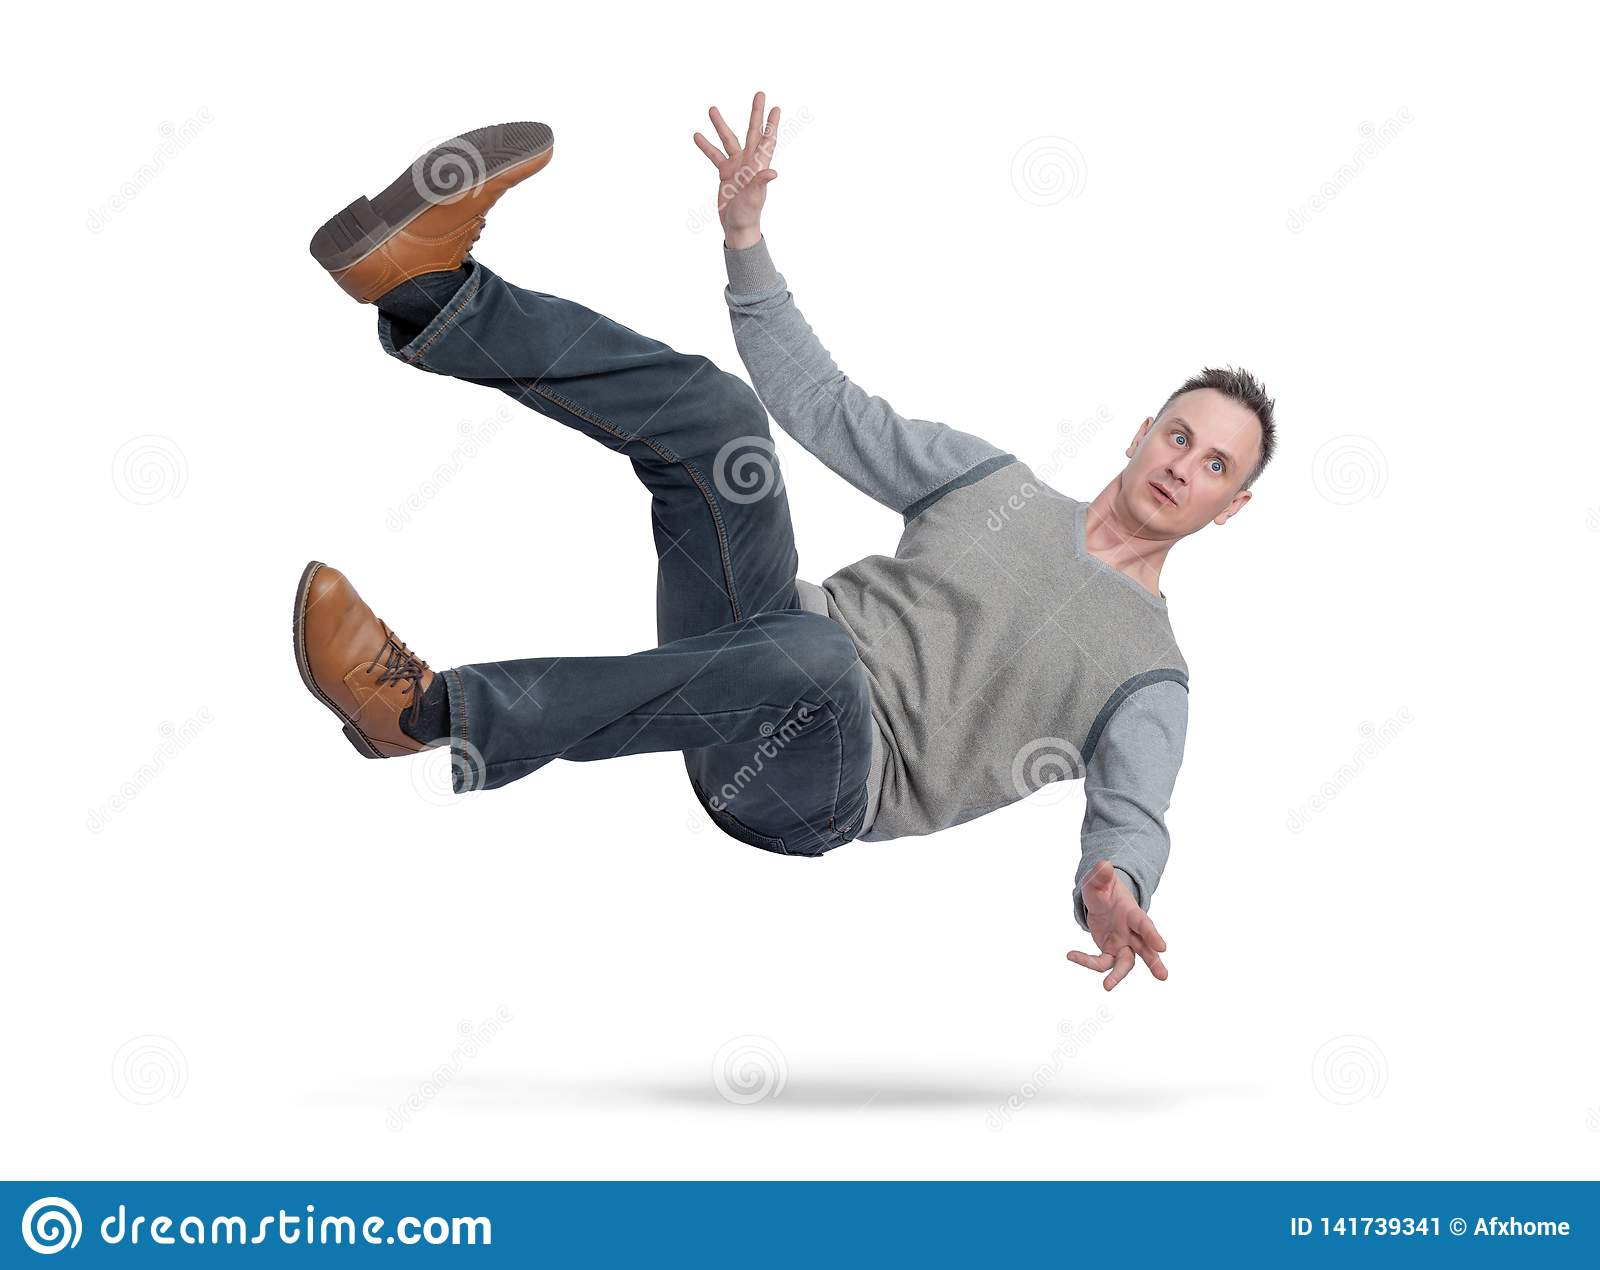 Situation, the man in casual clothes is falling down. isolated on white background. Concept of an accident